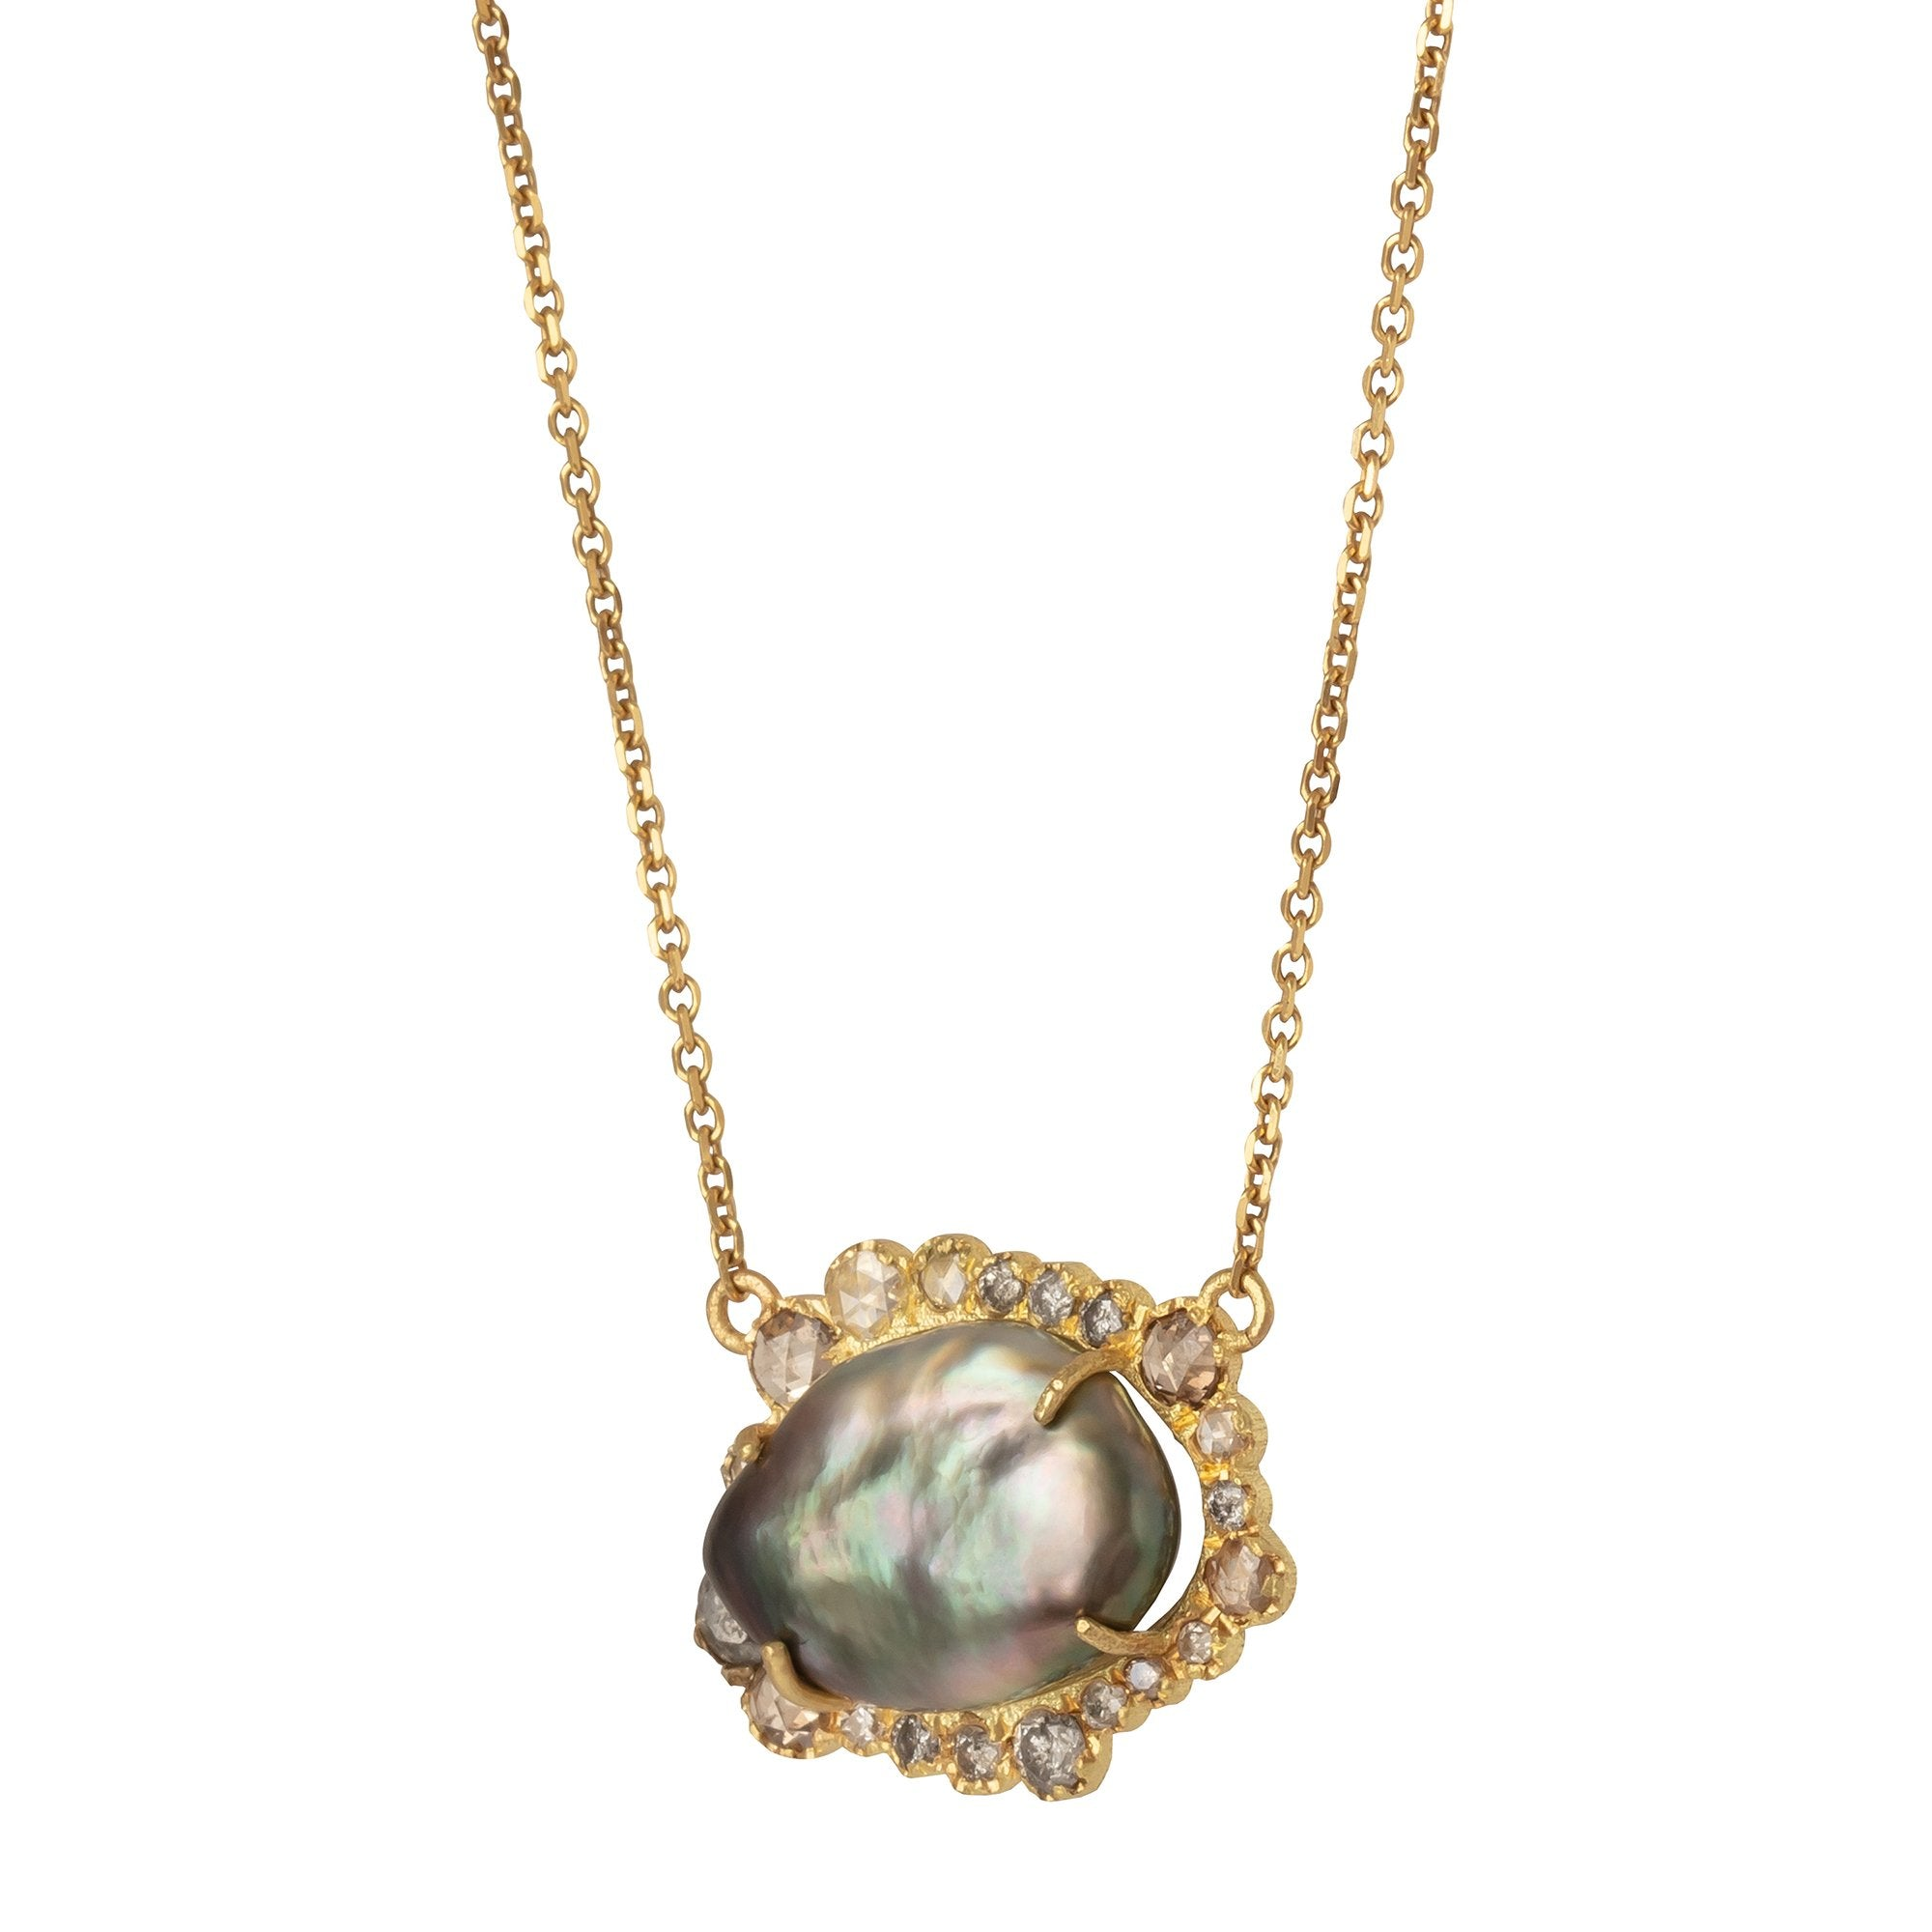 Keshi Pearl and Diamond Pendant Necklace - Marisa Klass - Necklaces | Broken English Jewelry